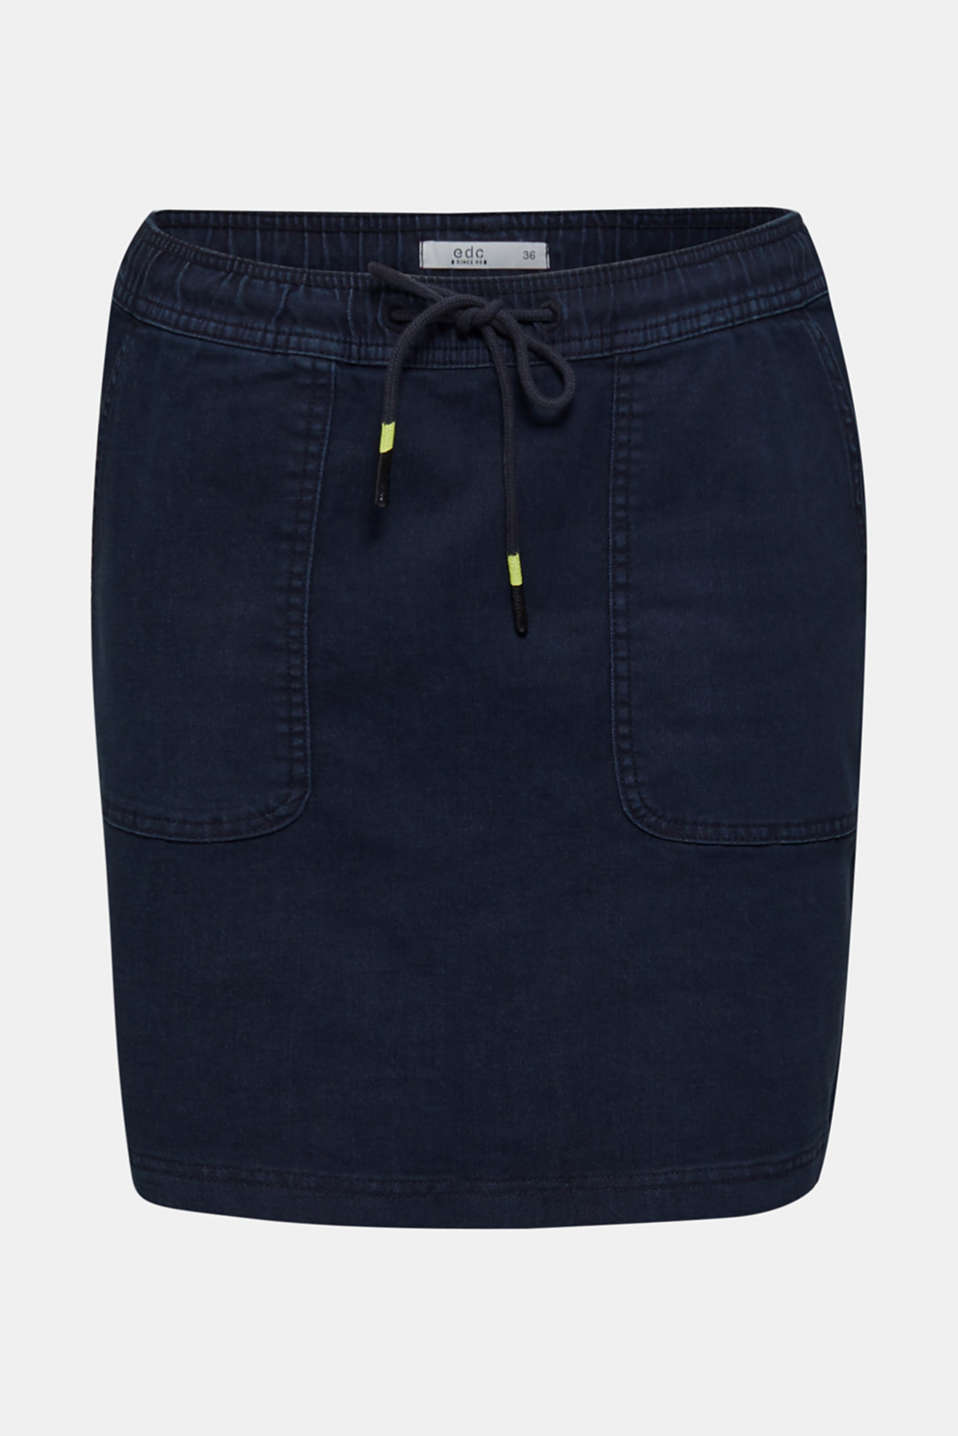 NEON skirt with sporty details, NAVY, detail image number 7